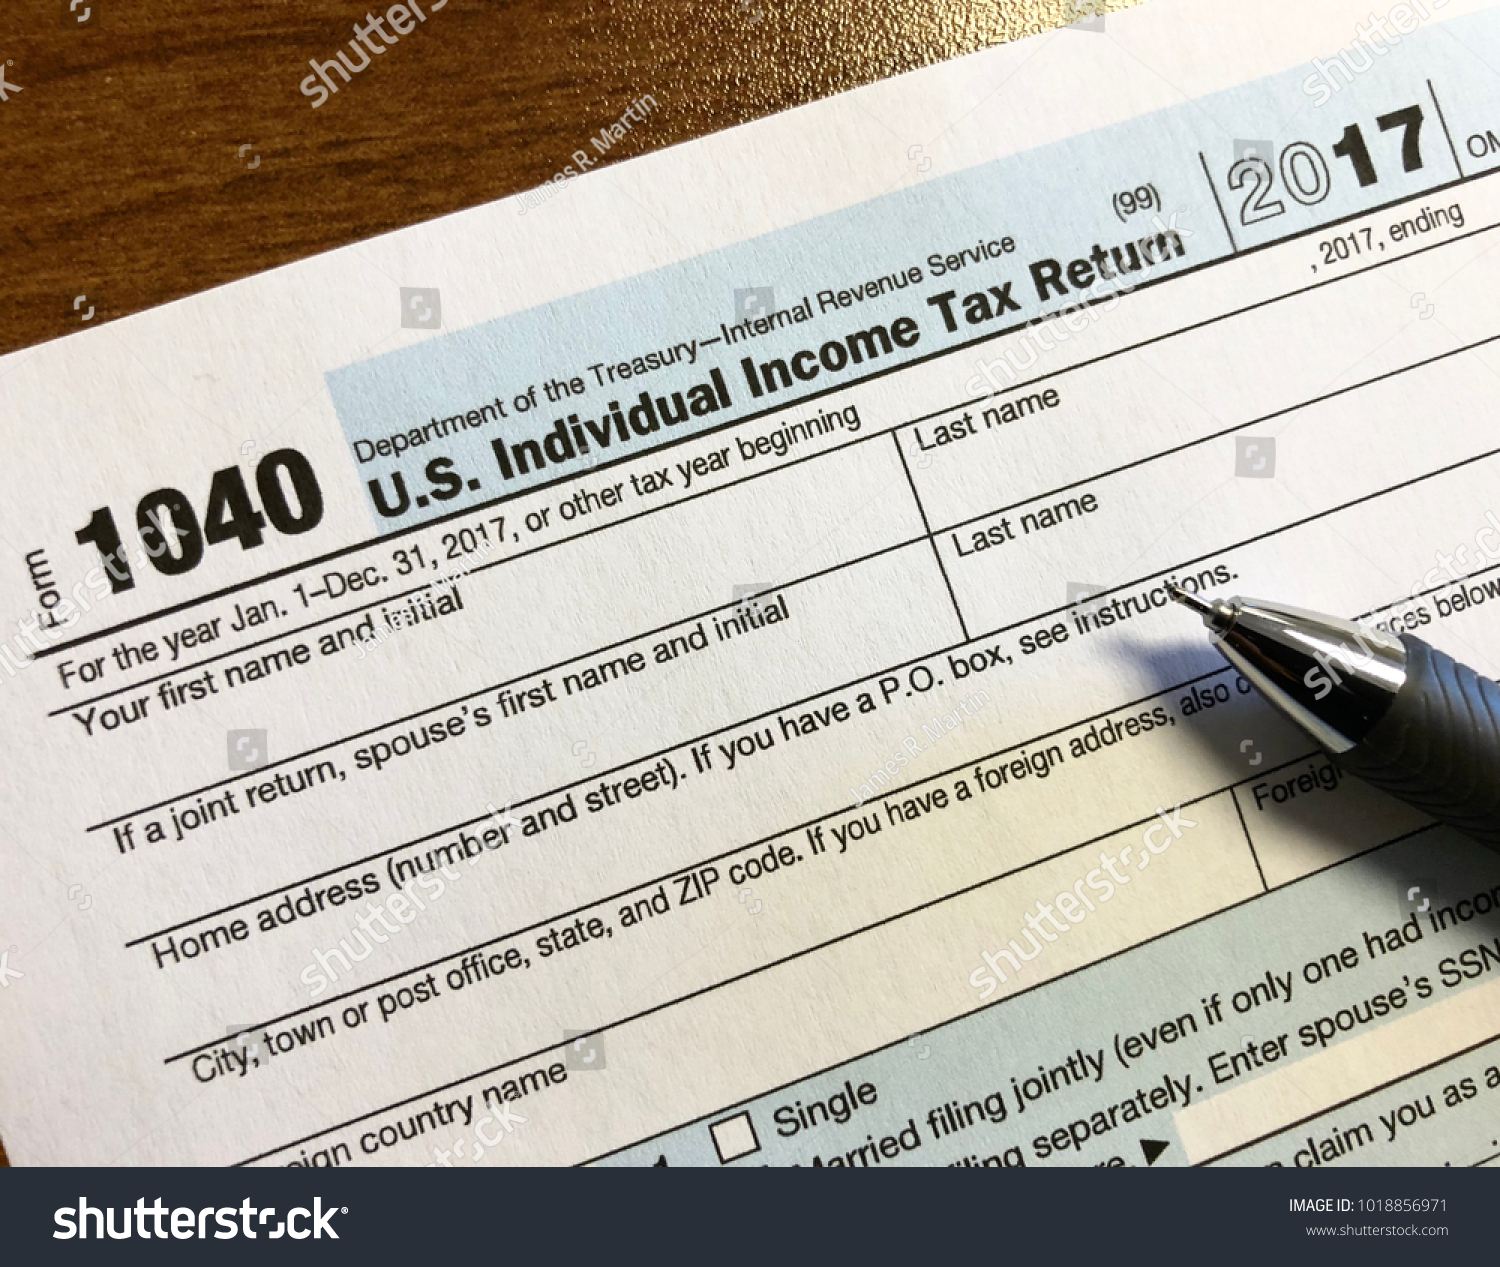 Irs Form 1310 Printable Gallery - free form design examples